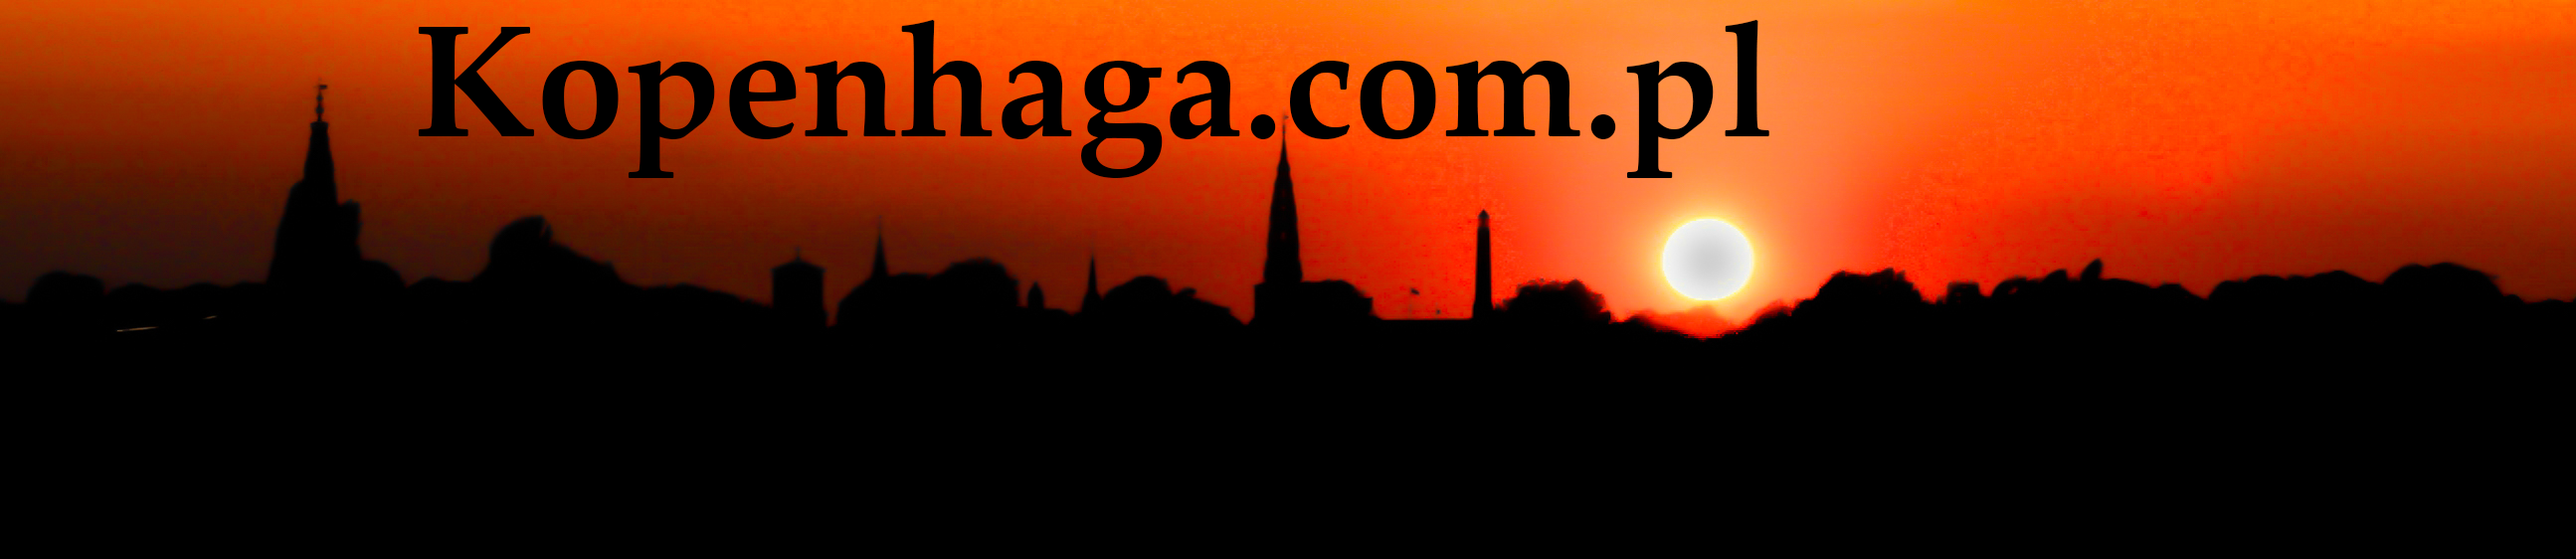 Copenhagen.com.pl bannerblack text in the background of buildings silhouettes during sunset